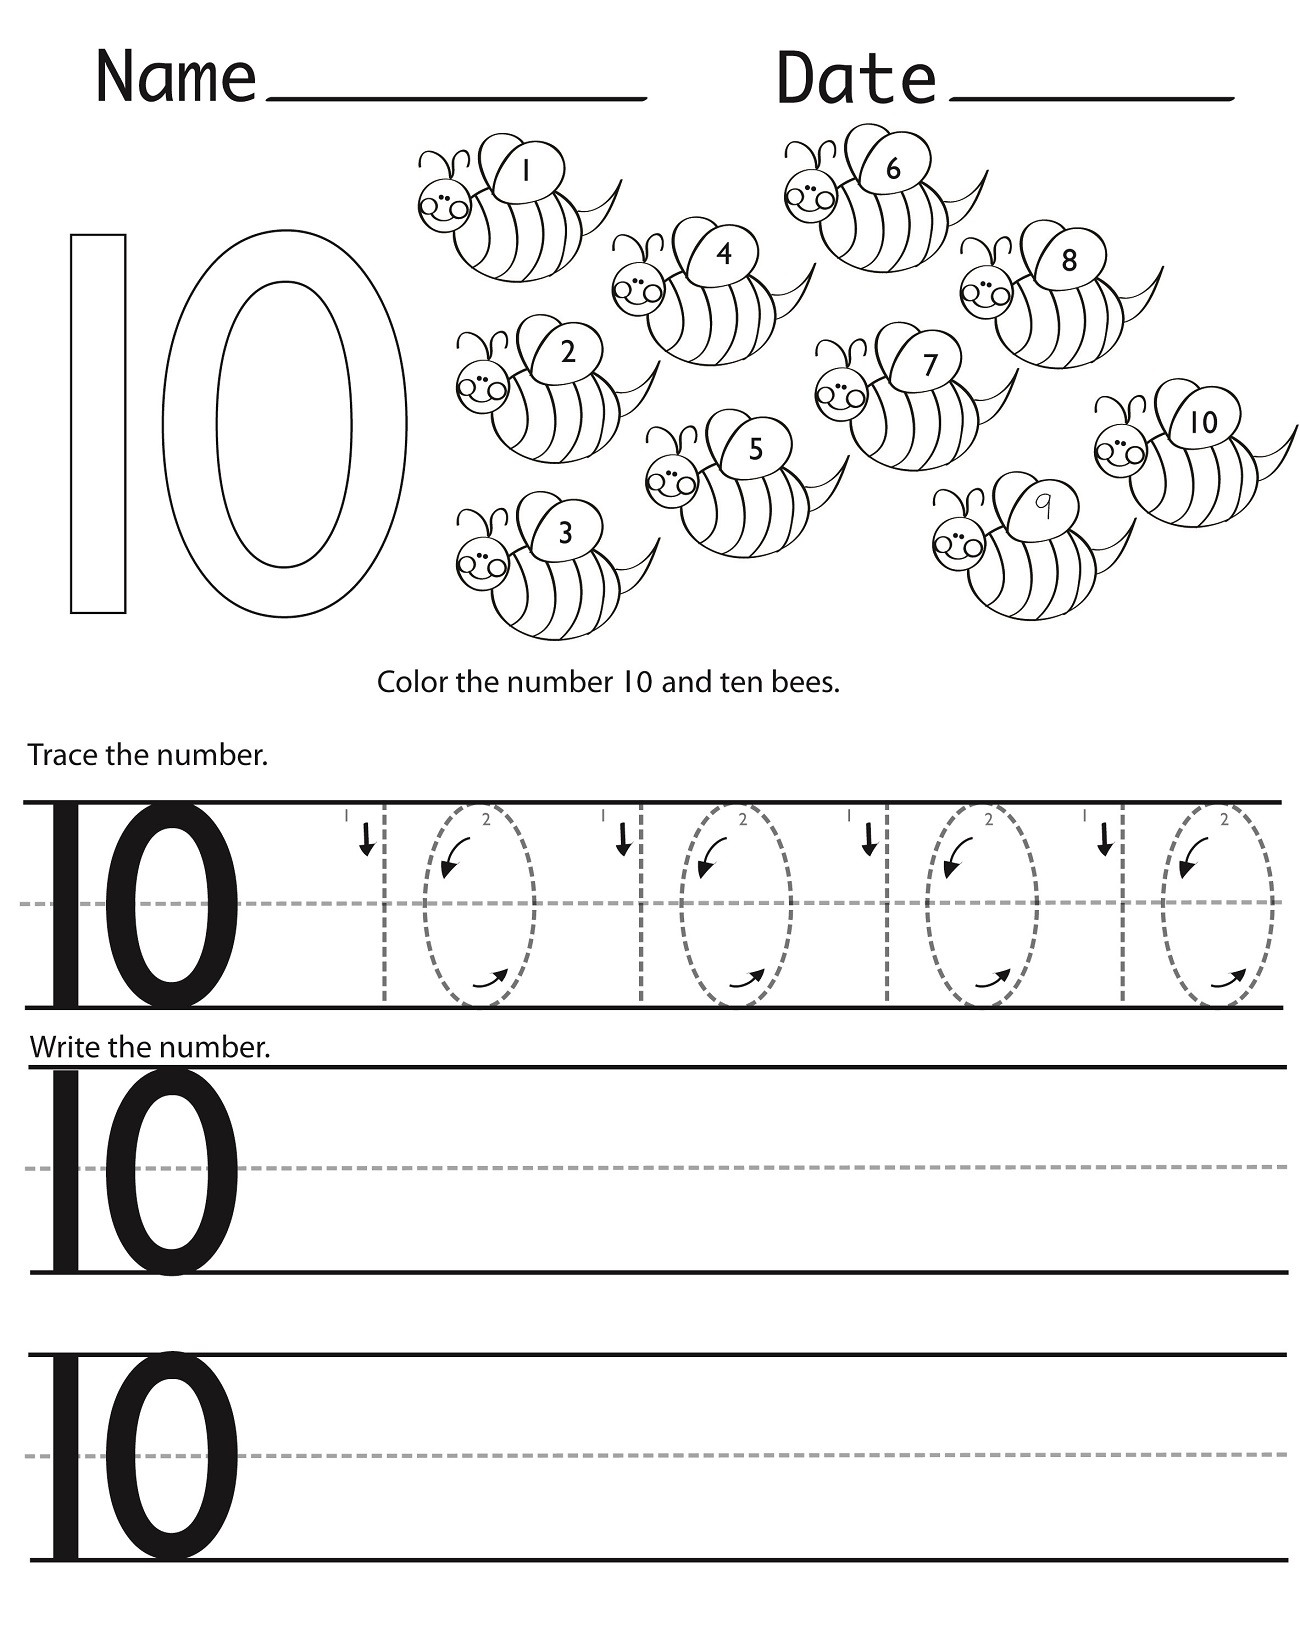 Number 10 Preschool Worksheets